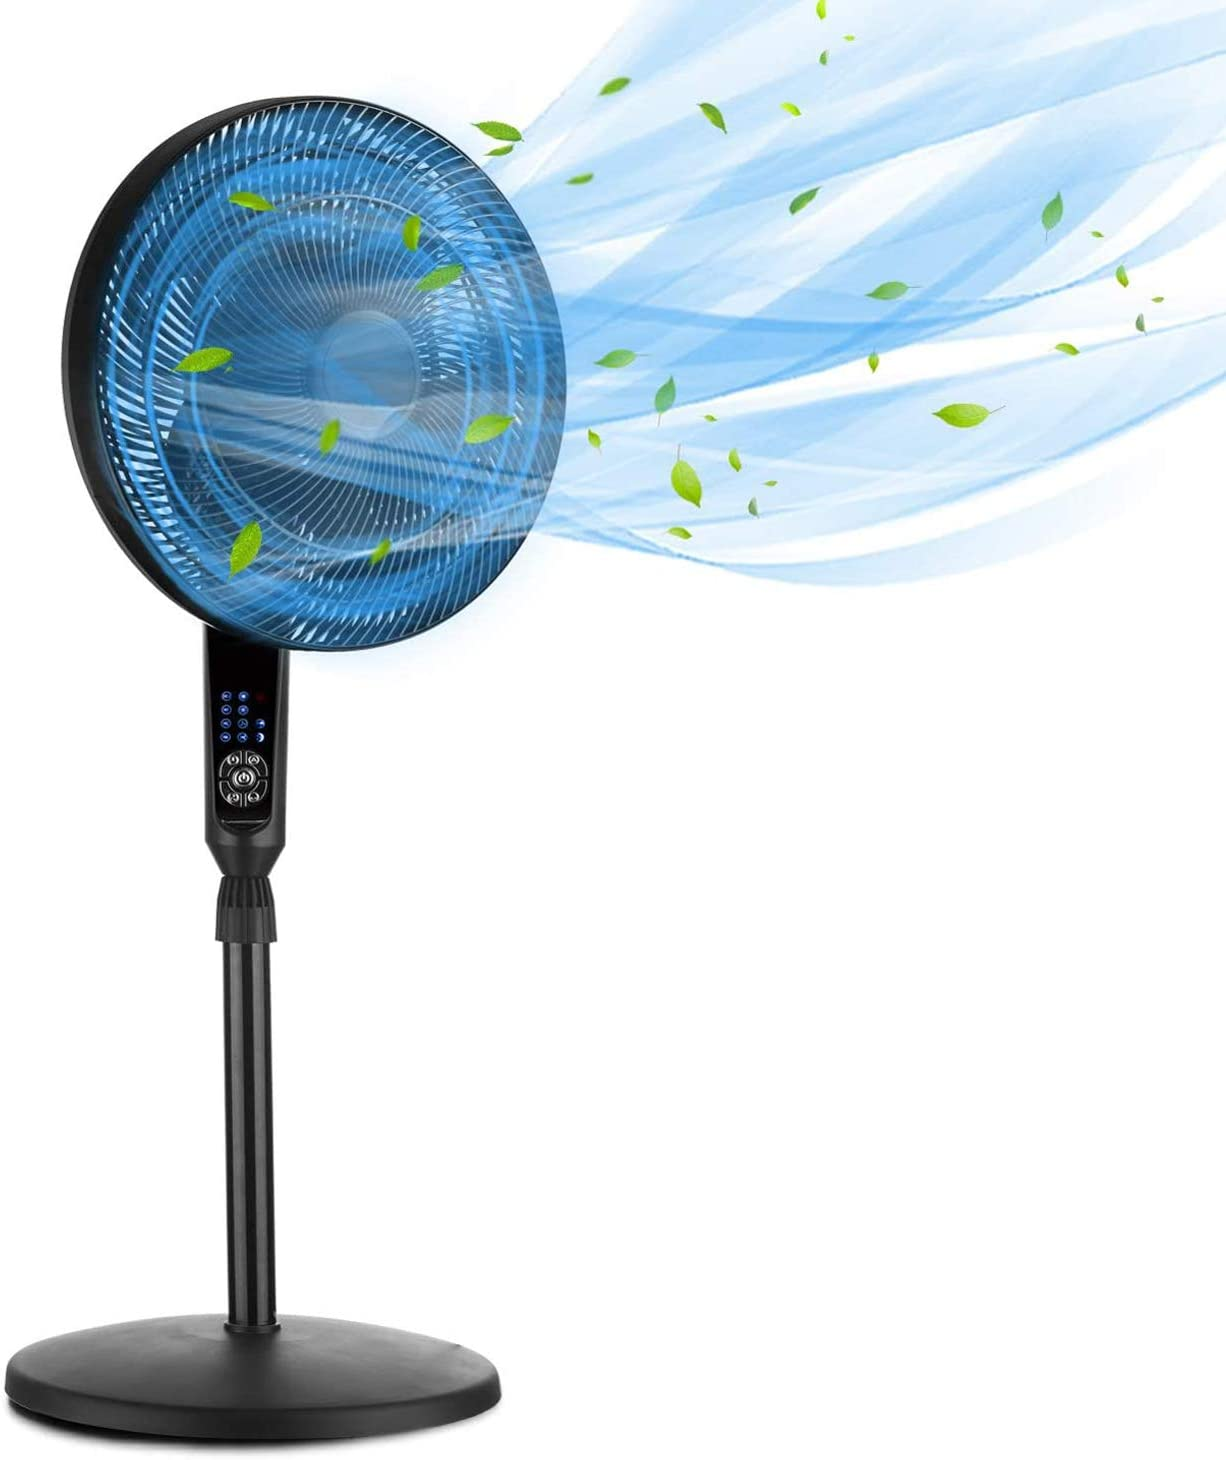 Super beauty product restock quality top GDY Pedestal Fan Today's only Adjustable Heights Deck LED 7.5-Ho Display